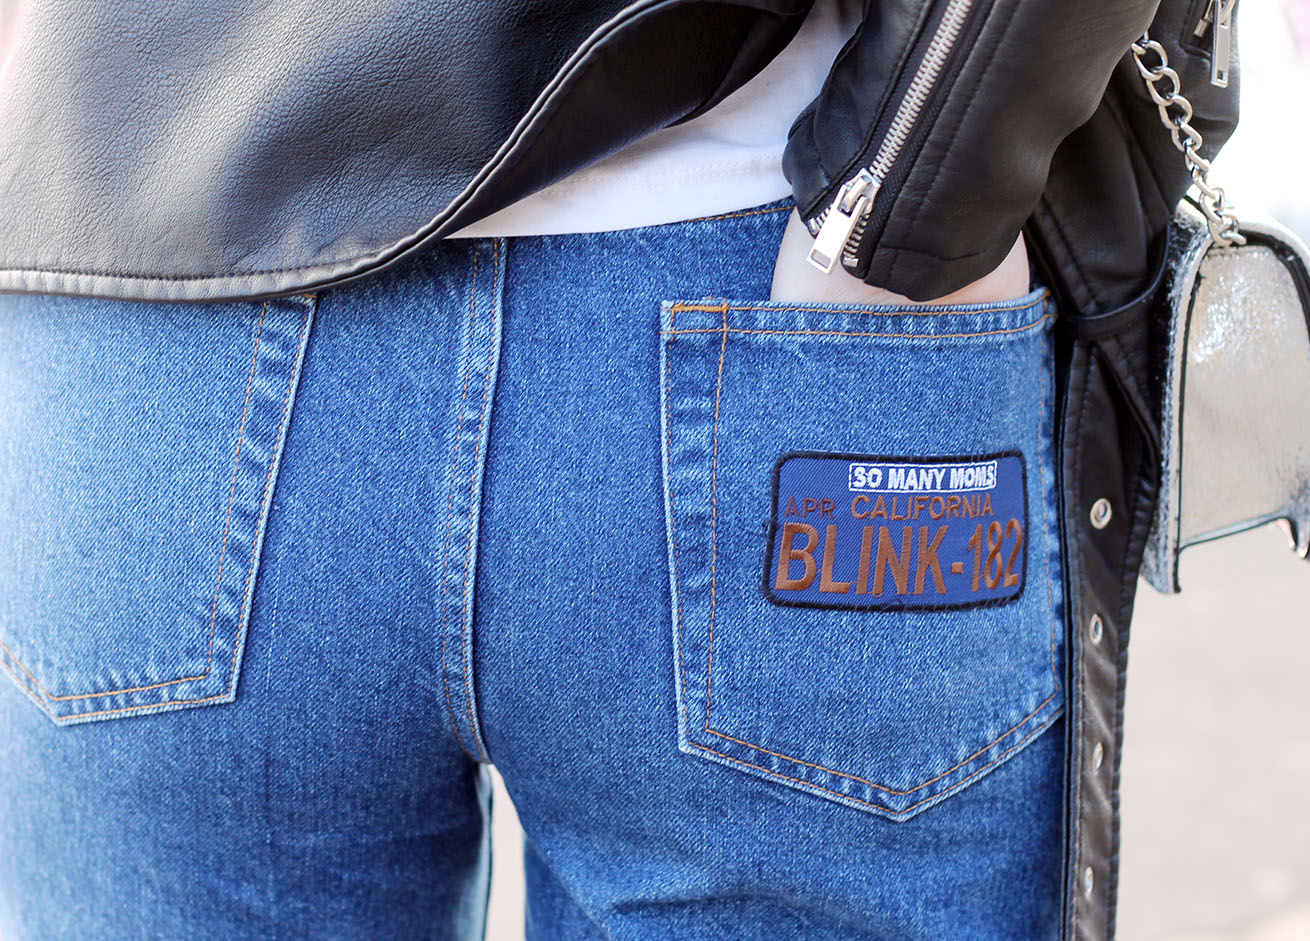 DIY JEANS BOYFRIEND EMBROIDERED JEANS WITH IRON ON PATCHES AND RAW STEP HEM | Tie Dye Eyes ...